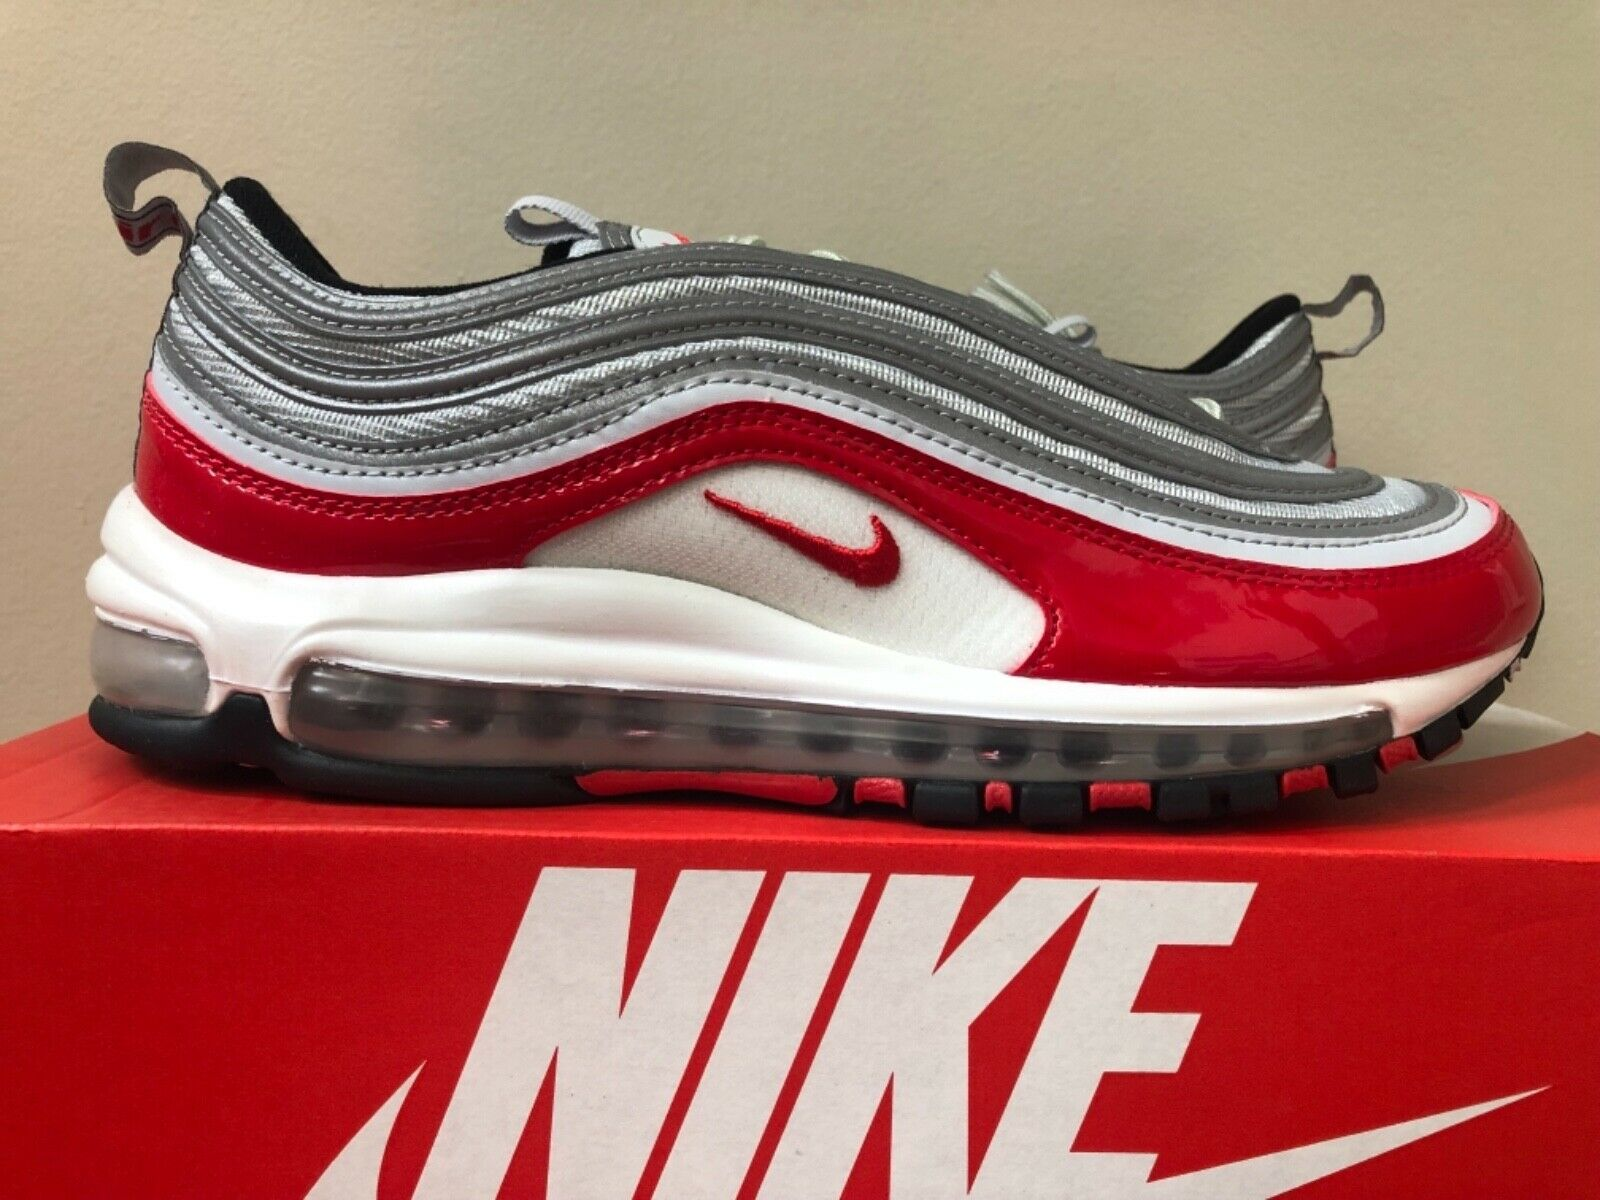 Nike Air Air Air Max 97 OG University Red Pure Platinum 921826-009 8-13 100% Authentic bcebf1